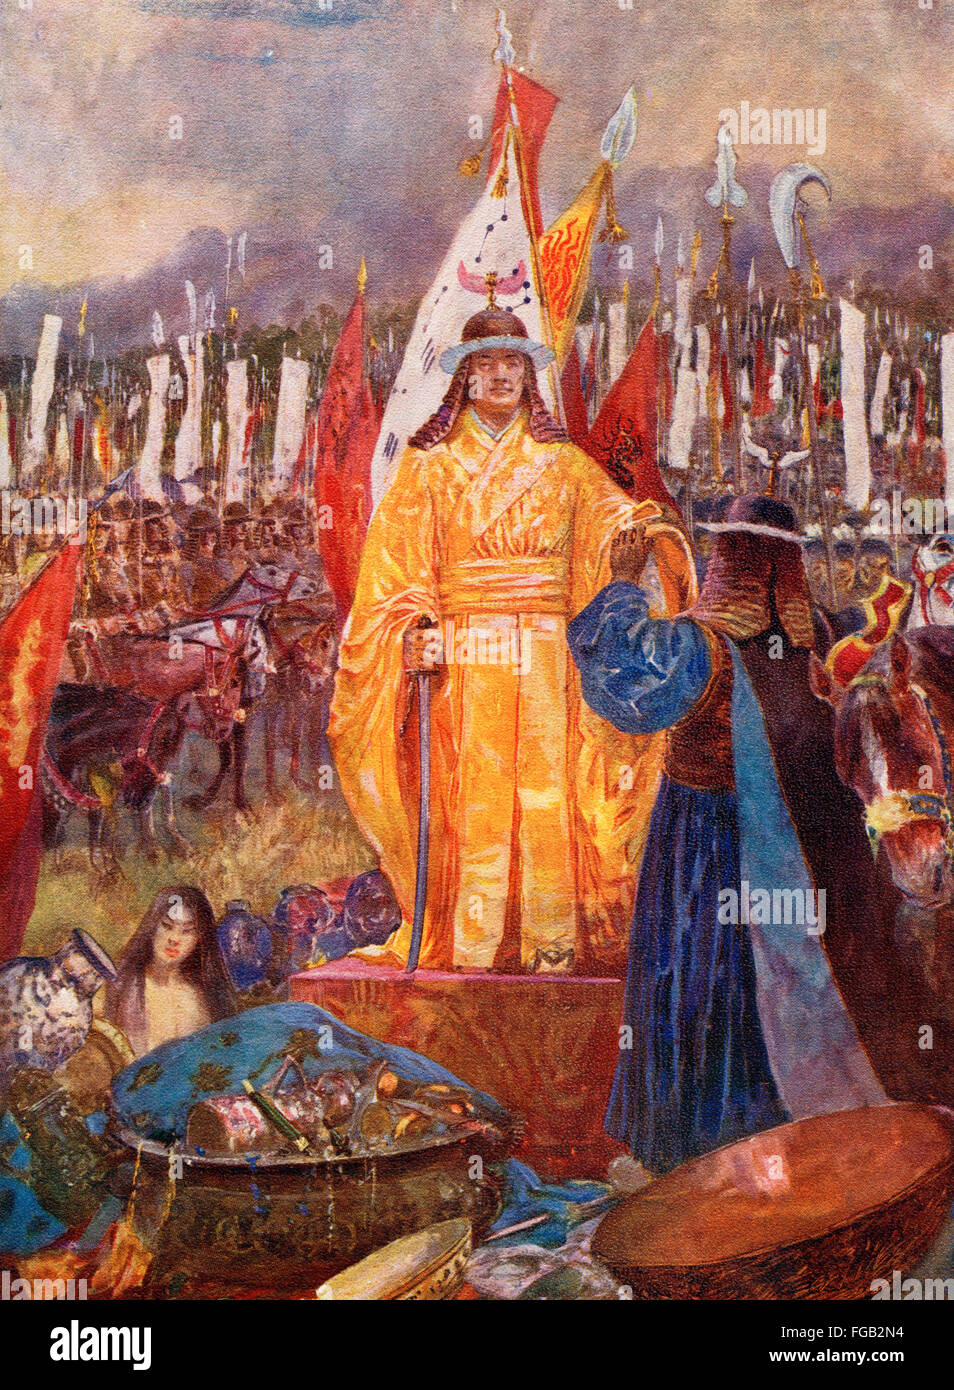 The Grand Marshal Zhao Kuangyin is proclaimed Emperor of the Song Dynasty on the battlefield after the Coup d'état - Stock Image